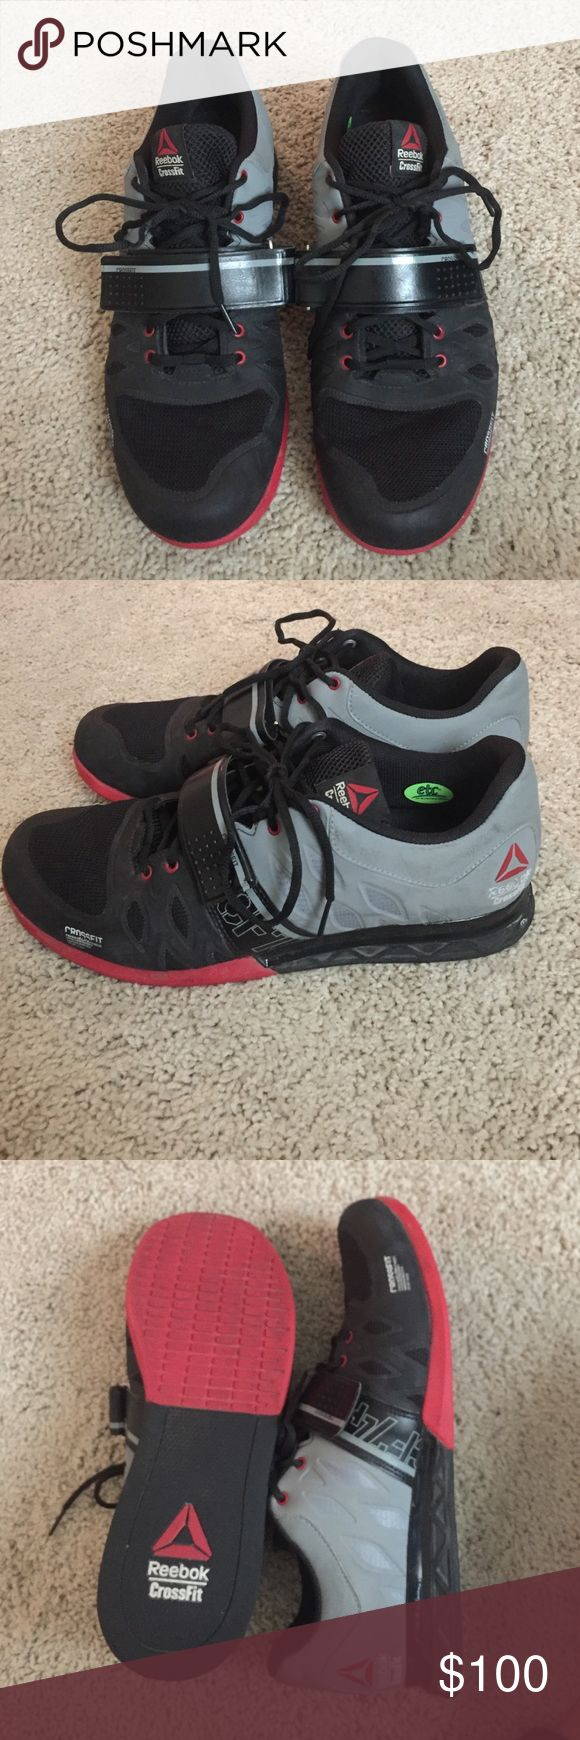 Men's CrossFit Shoes Reebok Men's CrossFit Lifter 2.0 Training Shoes. Worn a few times and still in really good condition. Reebok Shoes Sneakers